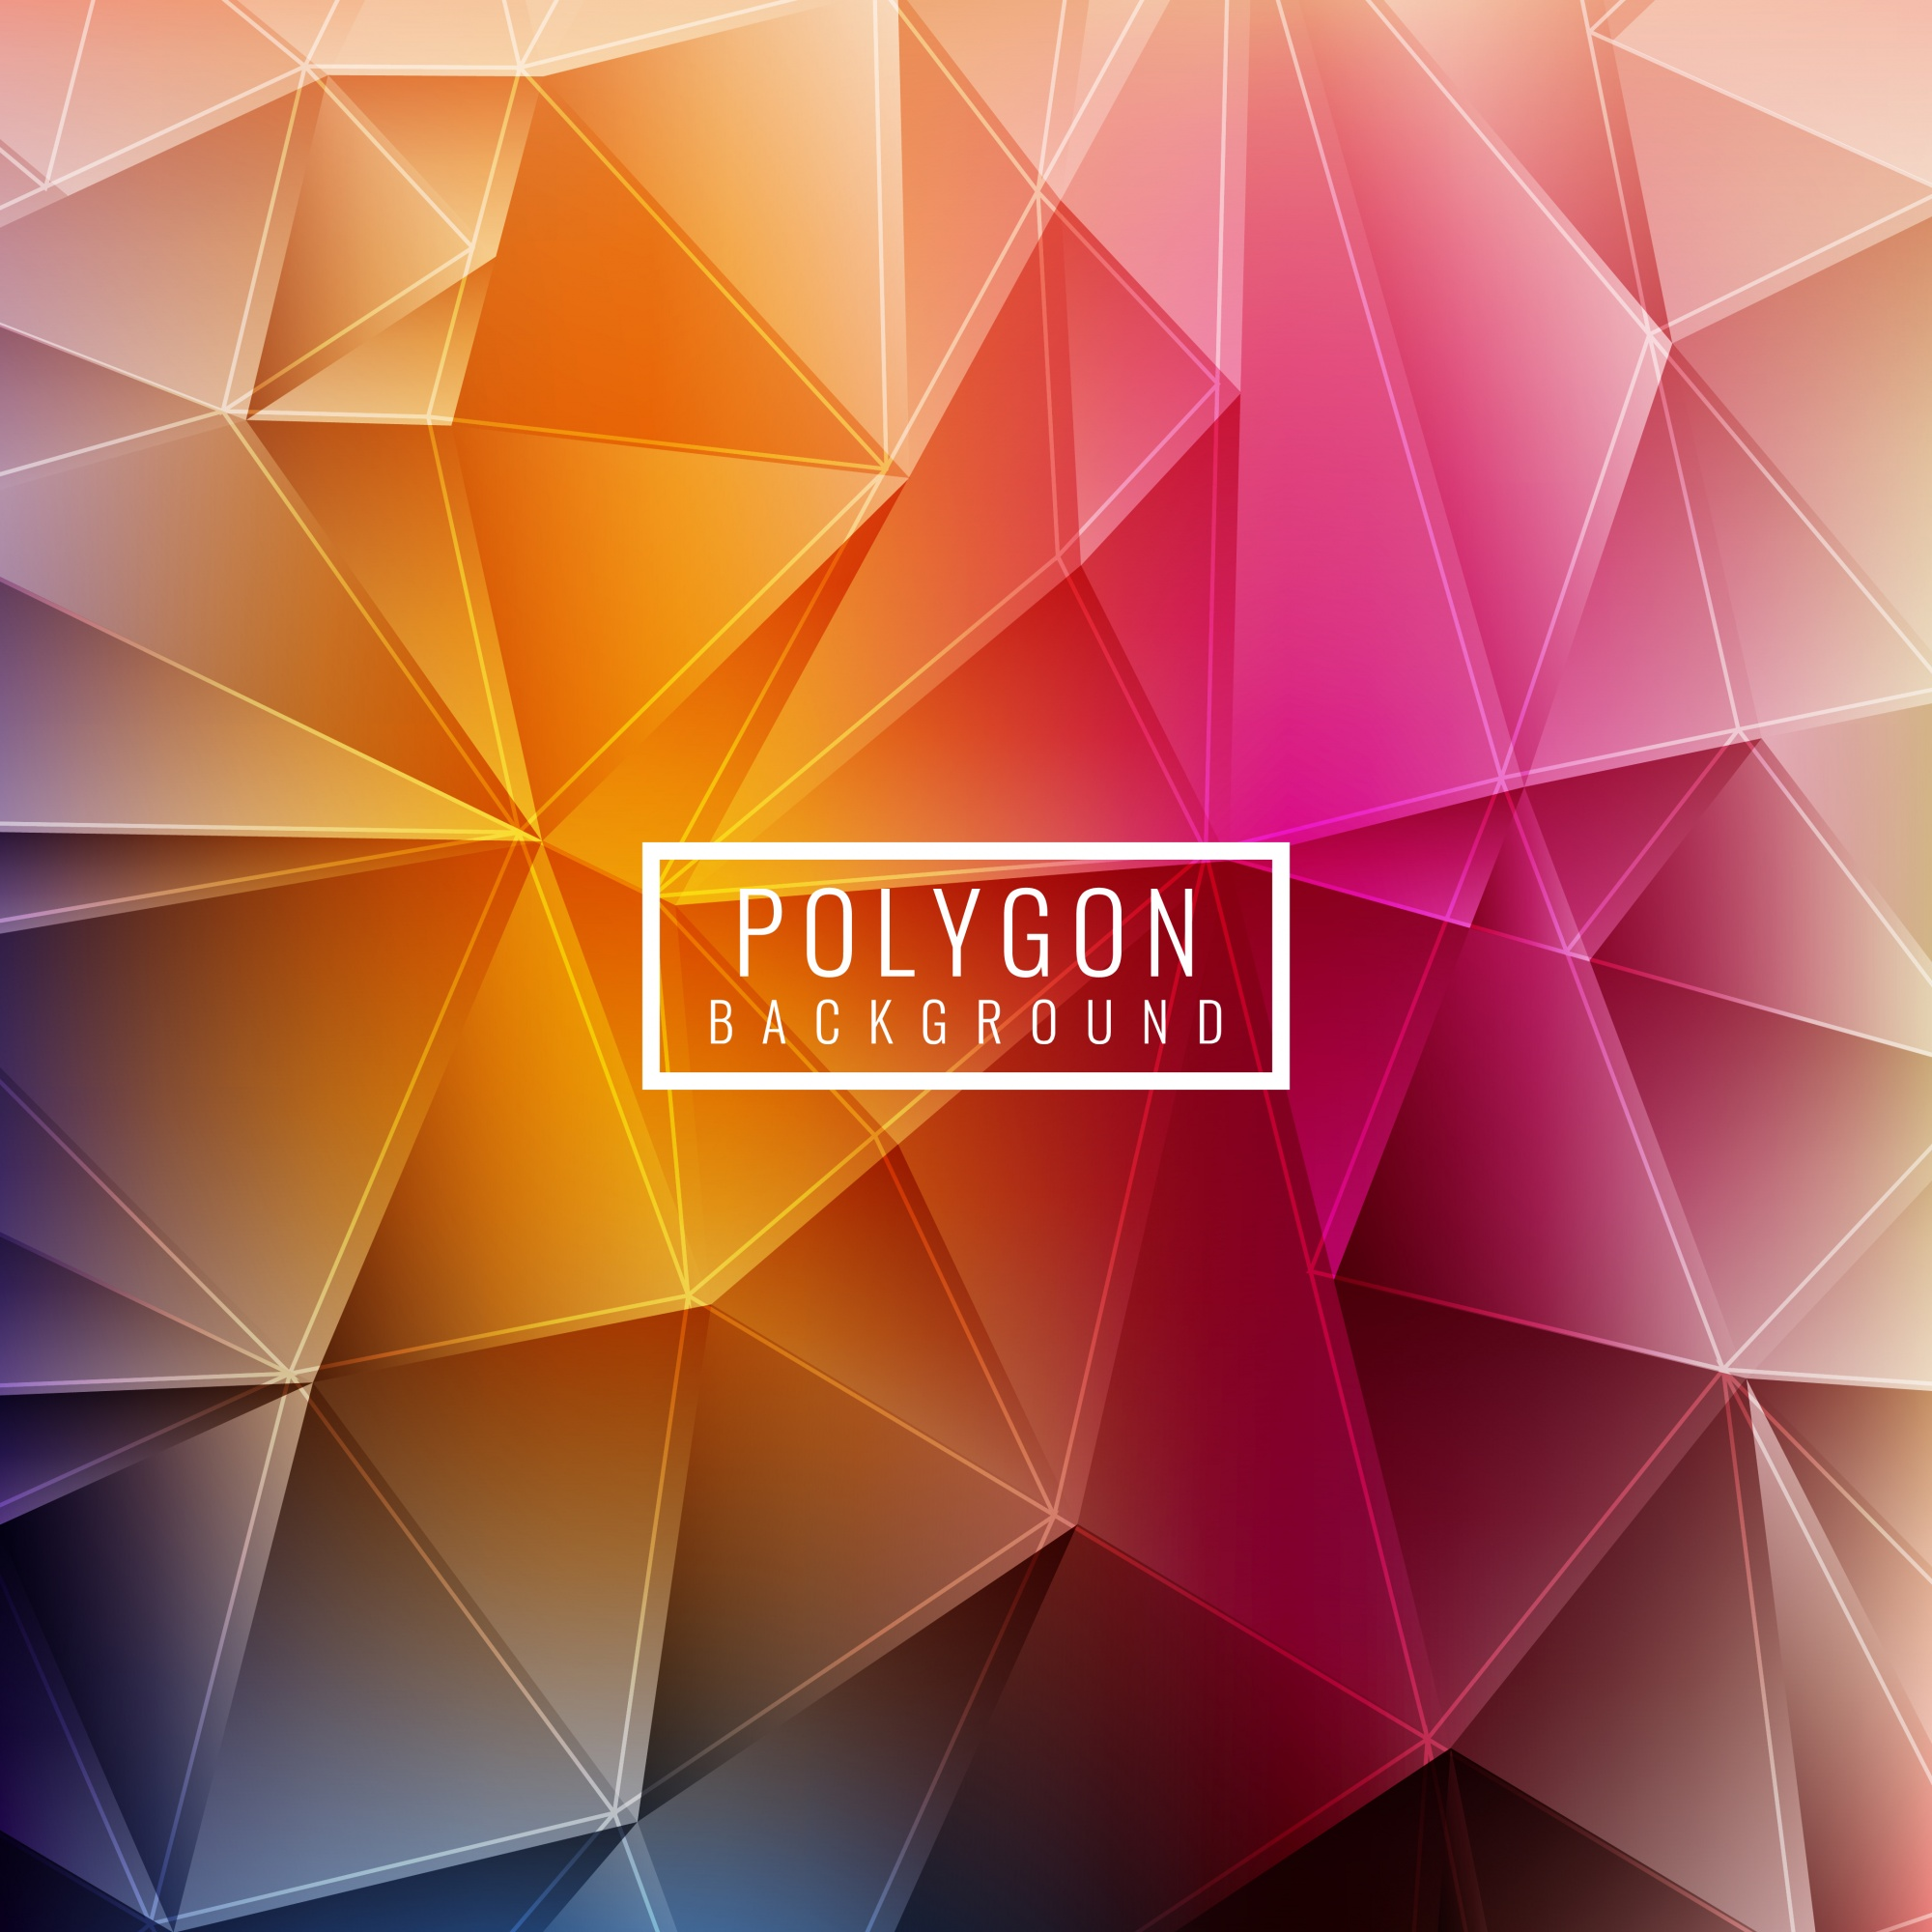 Polygonal background with colorful shapes